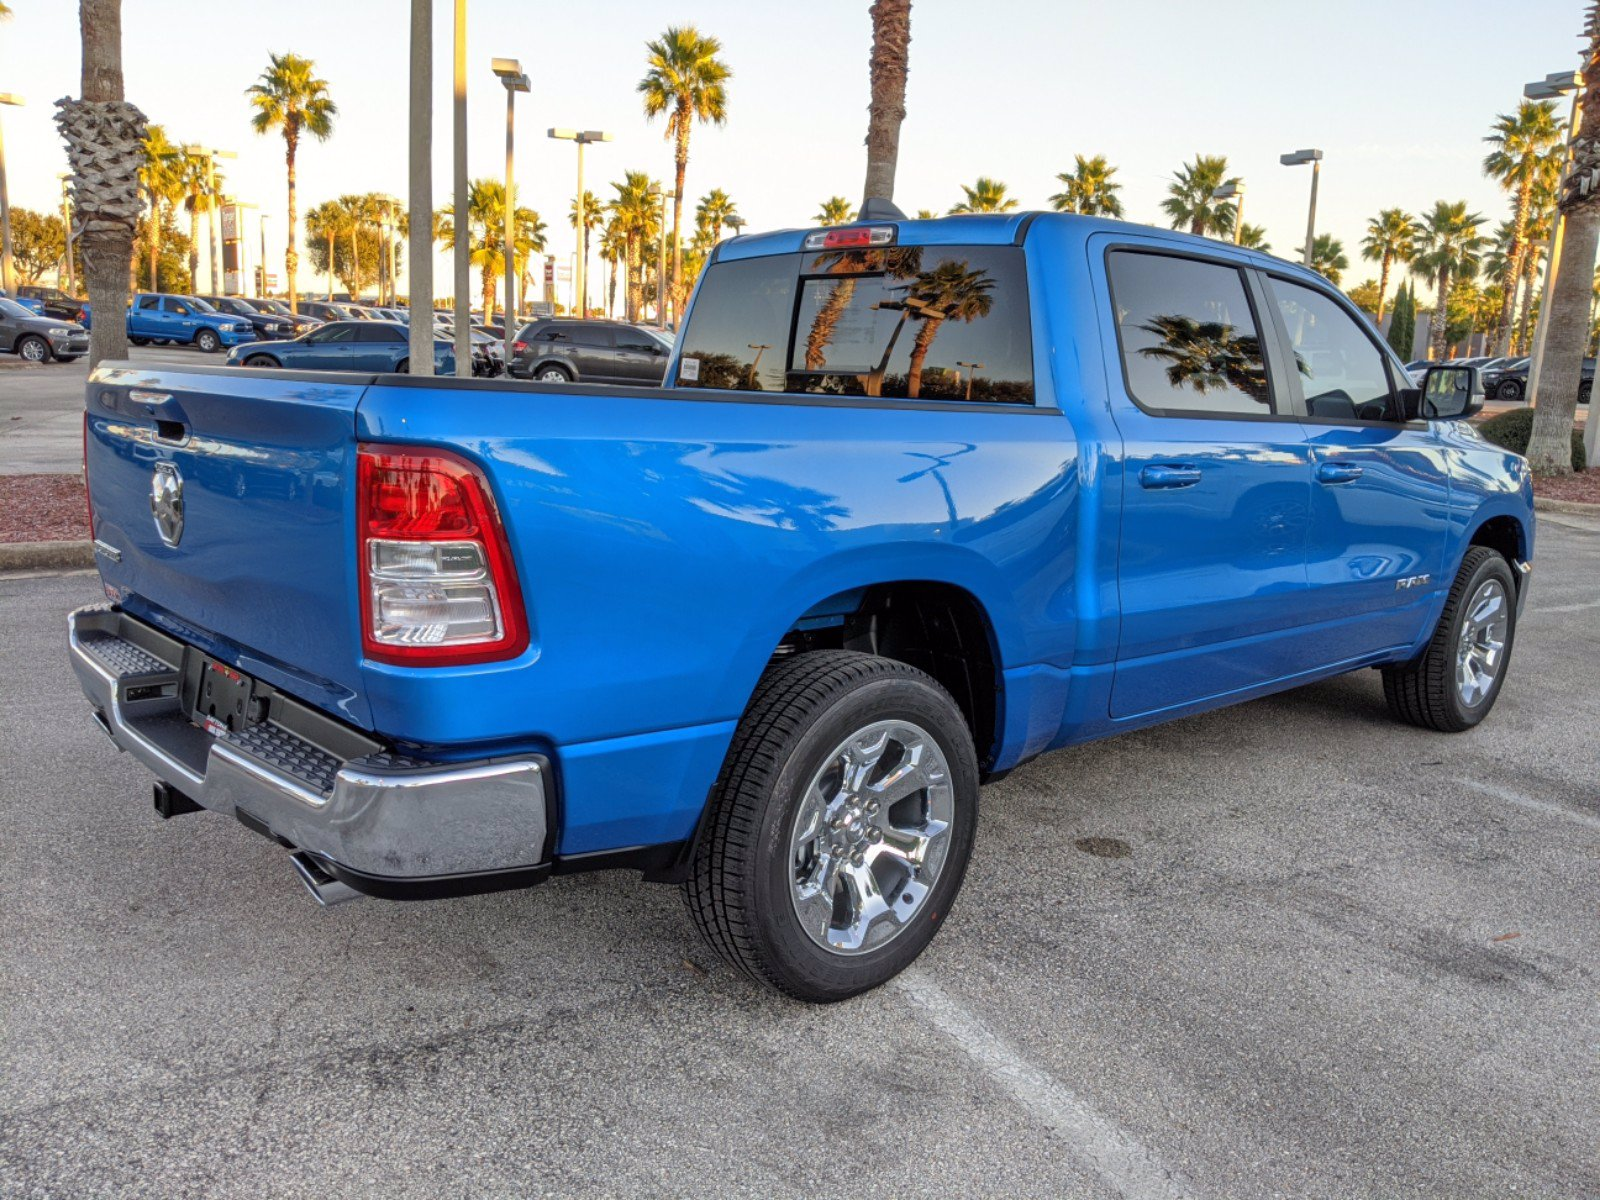 2021 Ram 1500 Crew Cab 4x2, Pickup #R21117 - photo 1